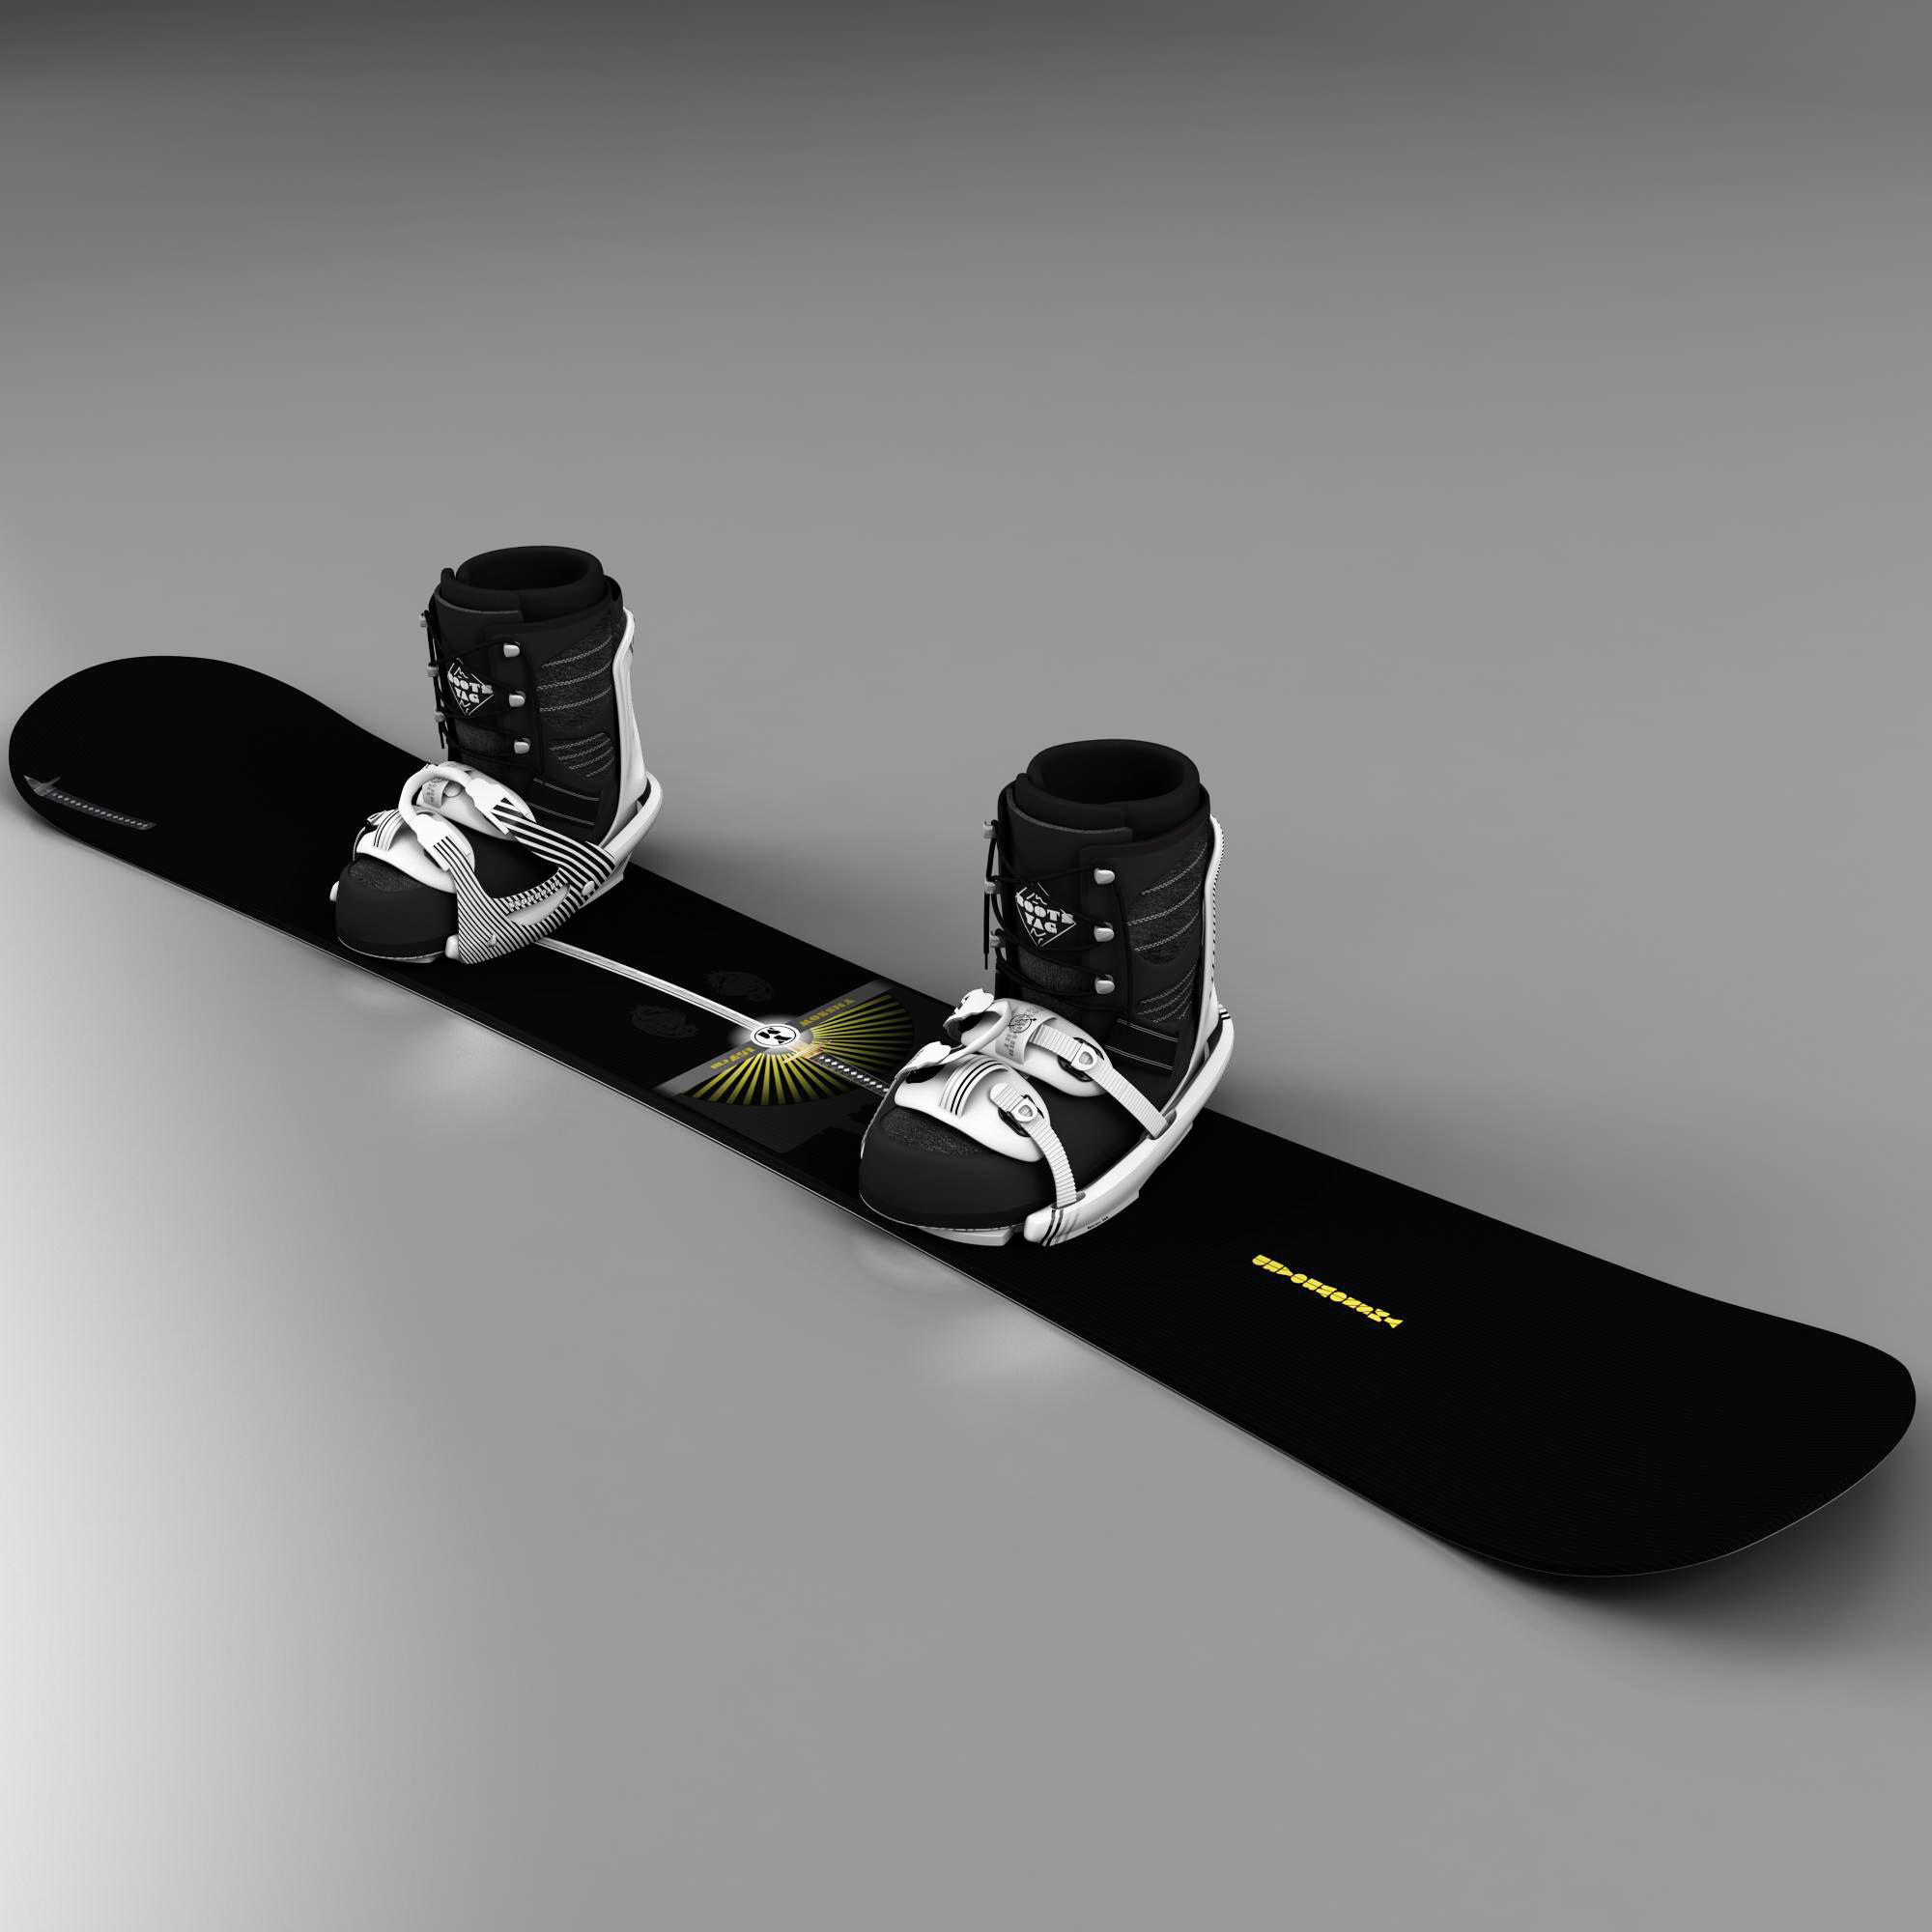 snow board 3d model 3ds max fbx ma mb obj 157638